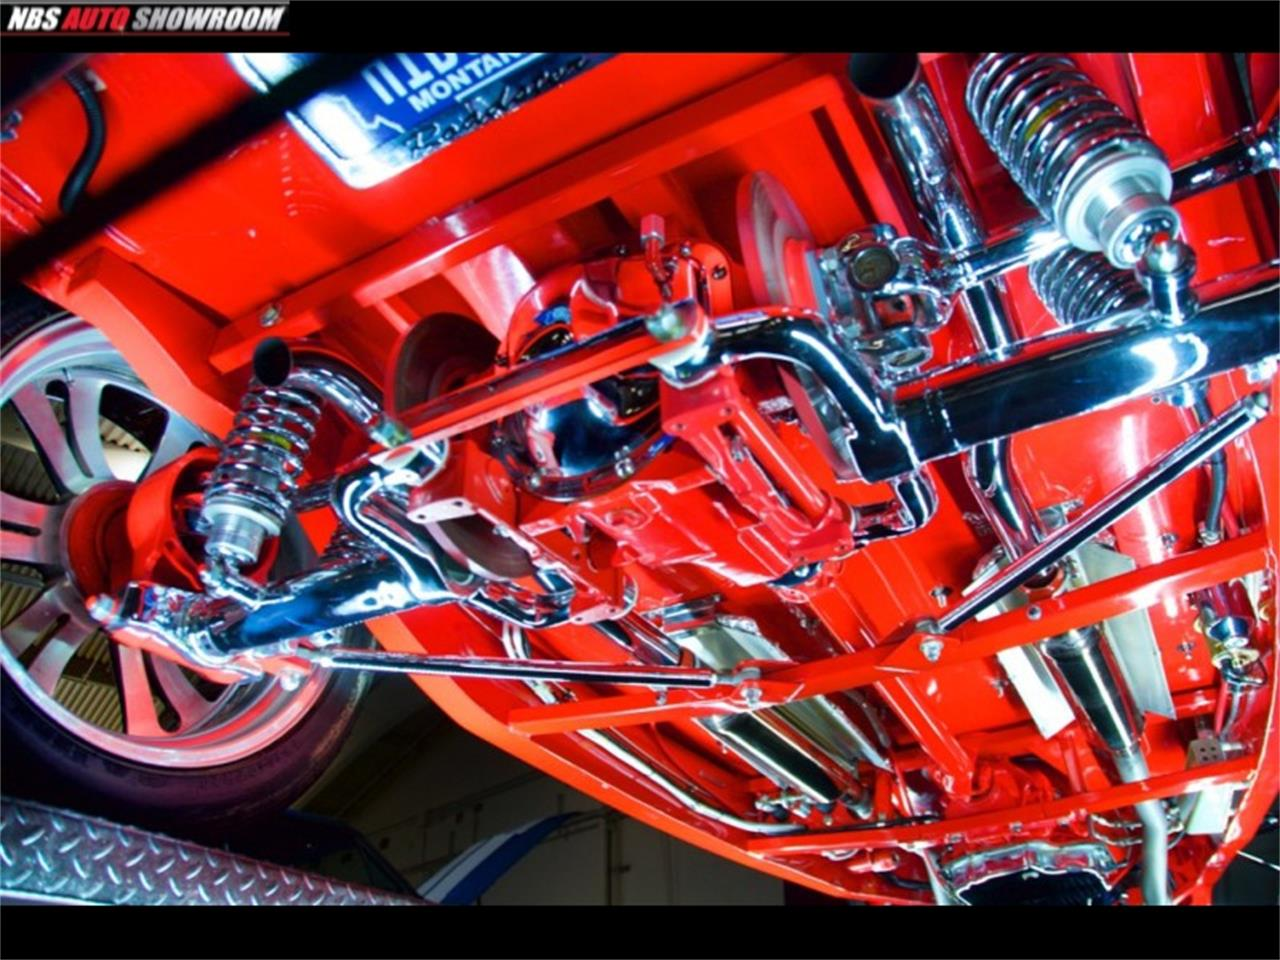 Large Picture of '32 Ford Roadster - $37,546.00 Offered by NBS Auto Showroom - QY4R